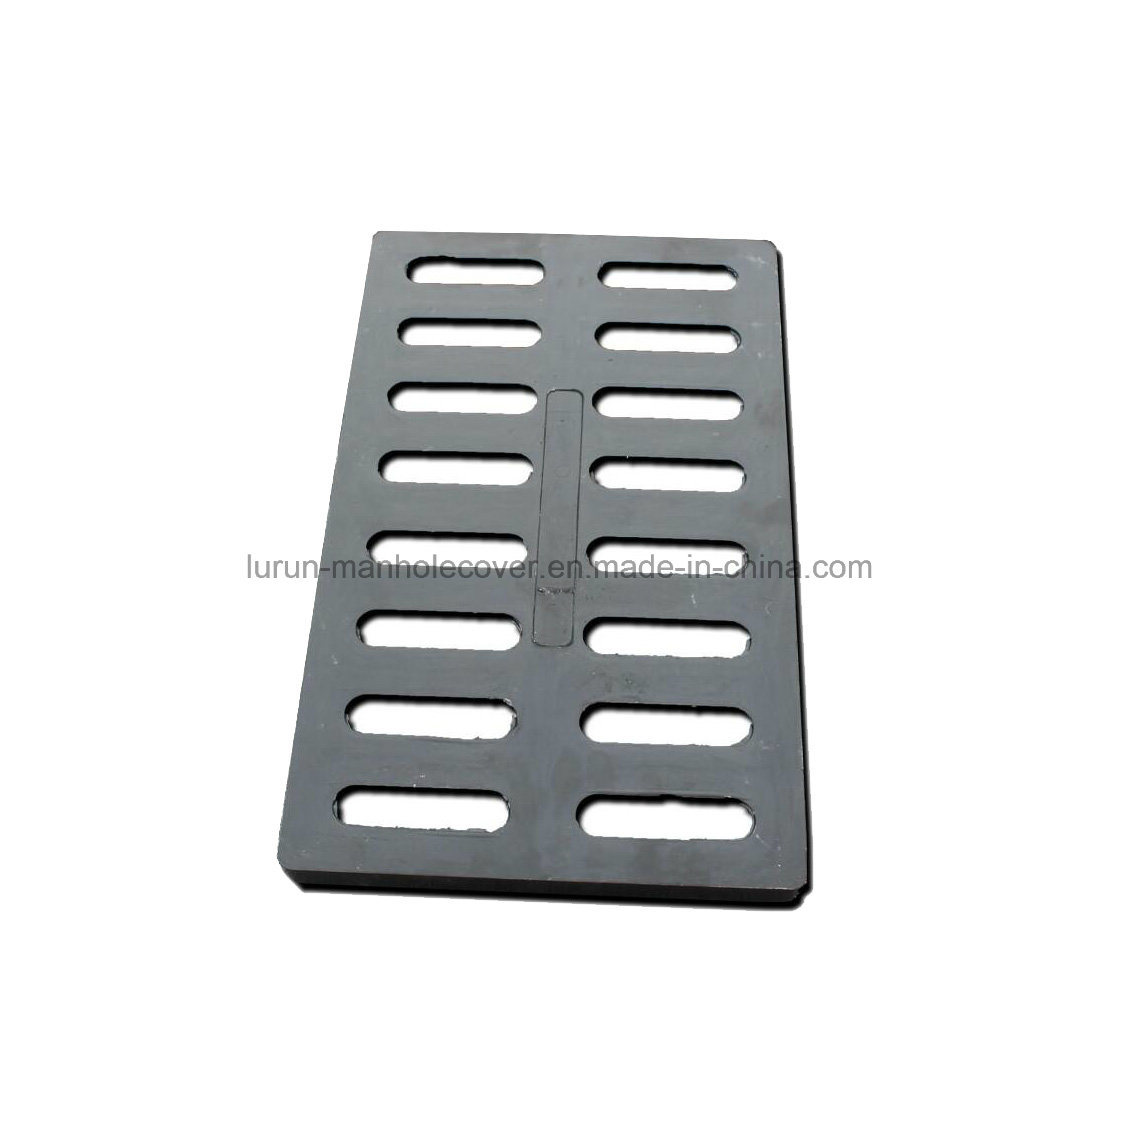 SGS En124 Light Duty Trench Cover From China